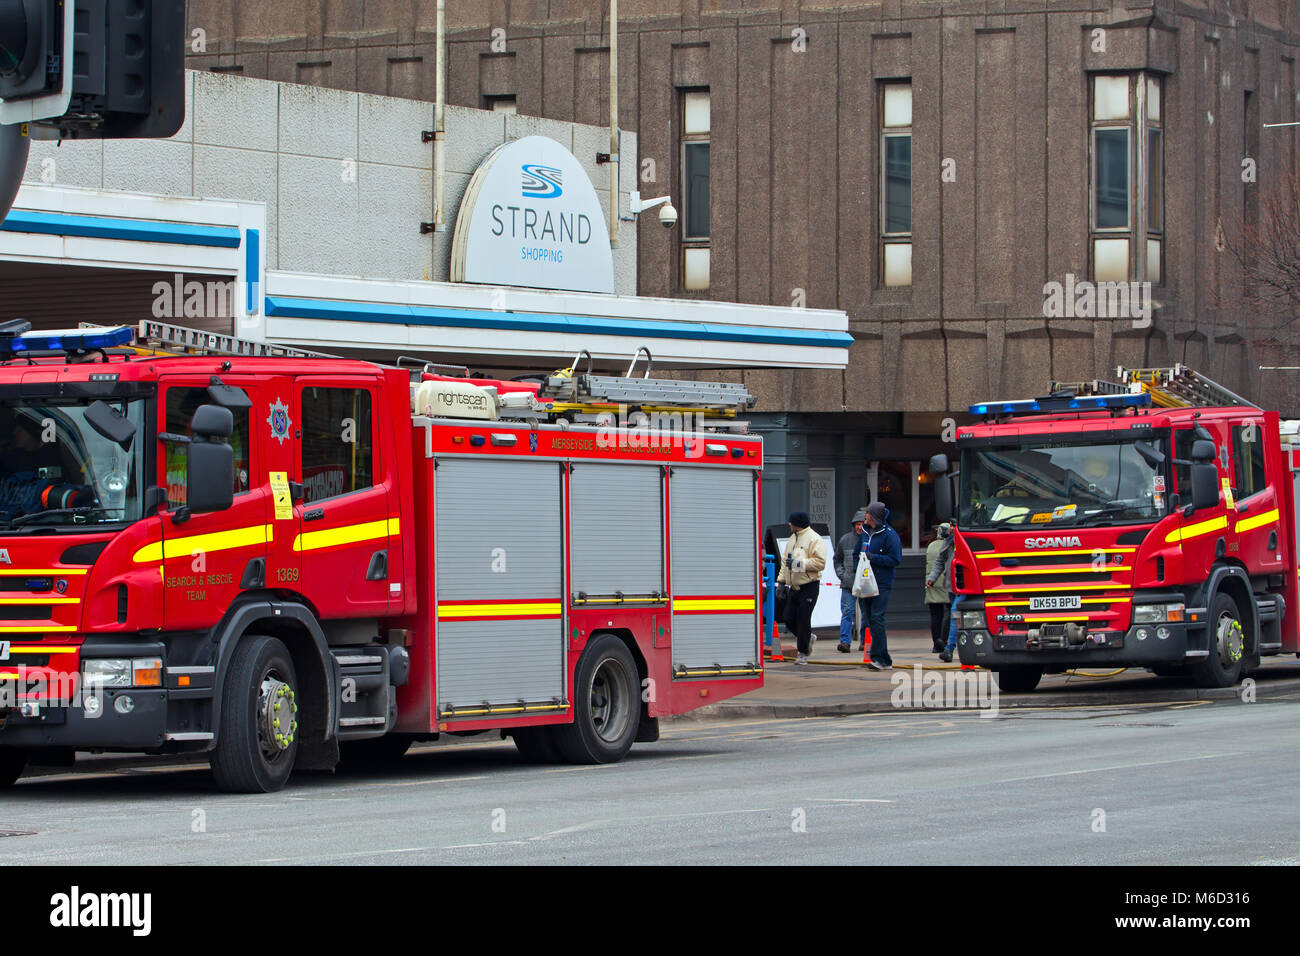 Bootle, Liverpool, UK. 2nd March 2018. Fire breaks out at the New Strand Shopping Centre in Bootle, Liverpool. The Stock Photo